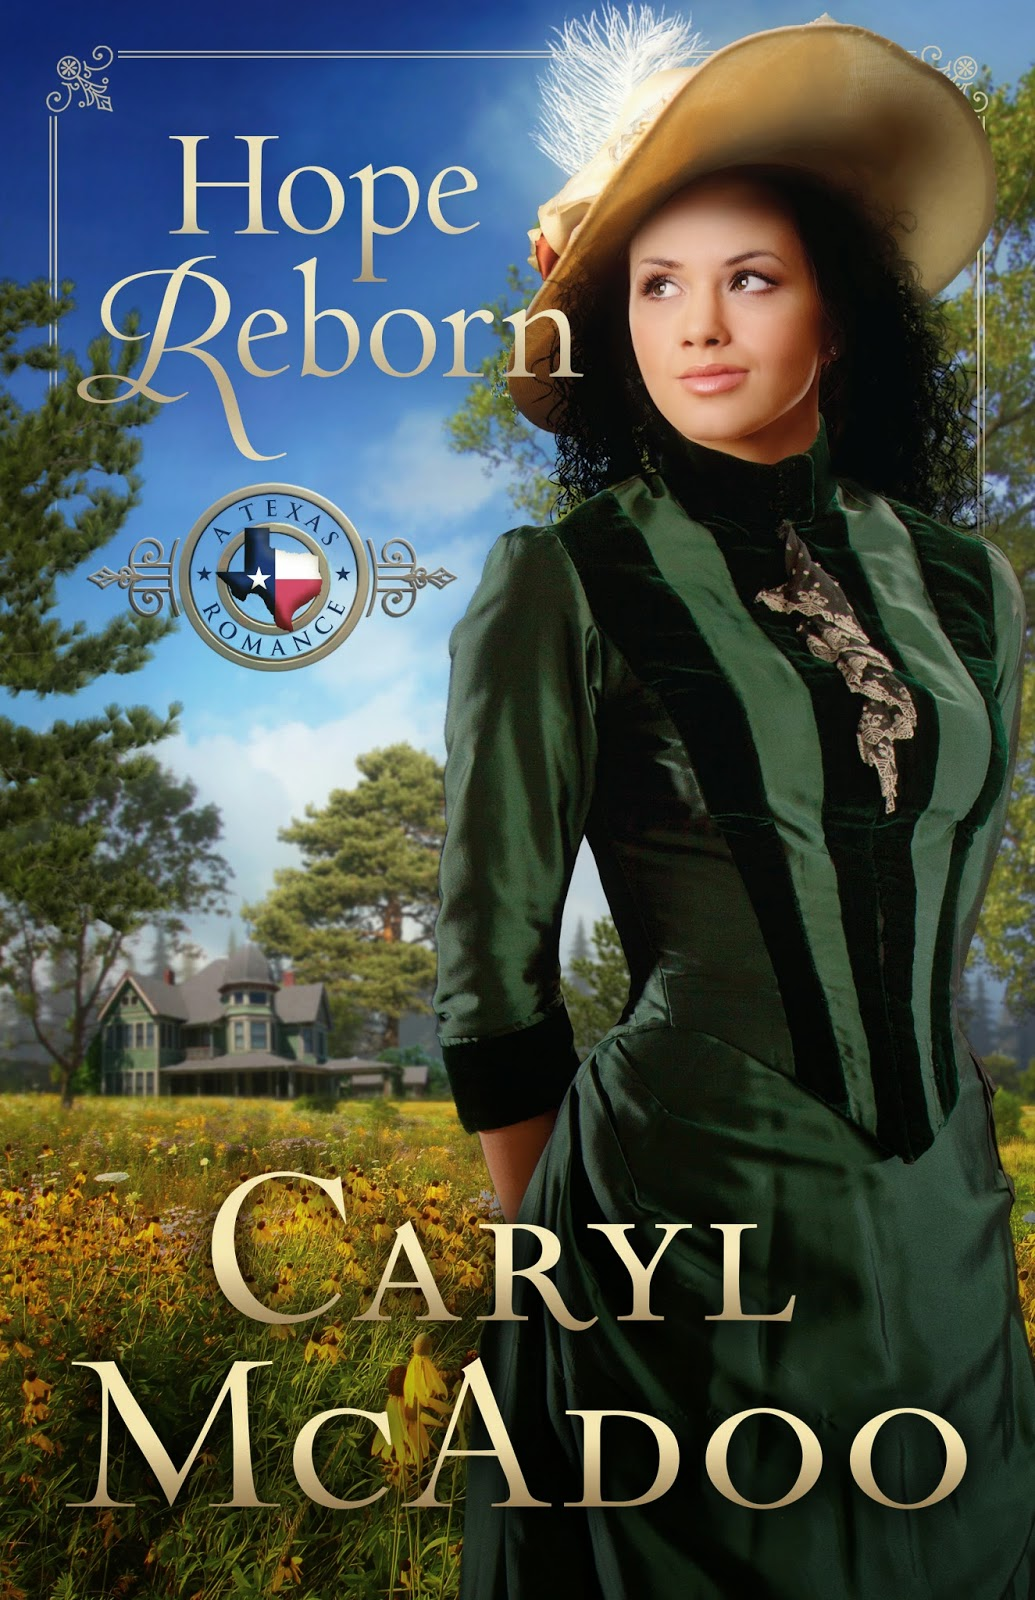 http://www.amazon.com/Hope-Reborn-Texas-Romance-Book-ebook/dp/B00RASZWEY/ref=sr_1_1?s=books&ie=UTF8&qid=1419887375&sr=1-1&keywords=caryl+mcadoo